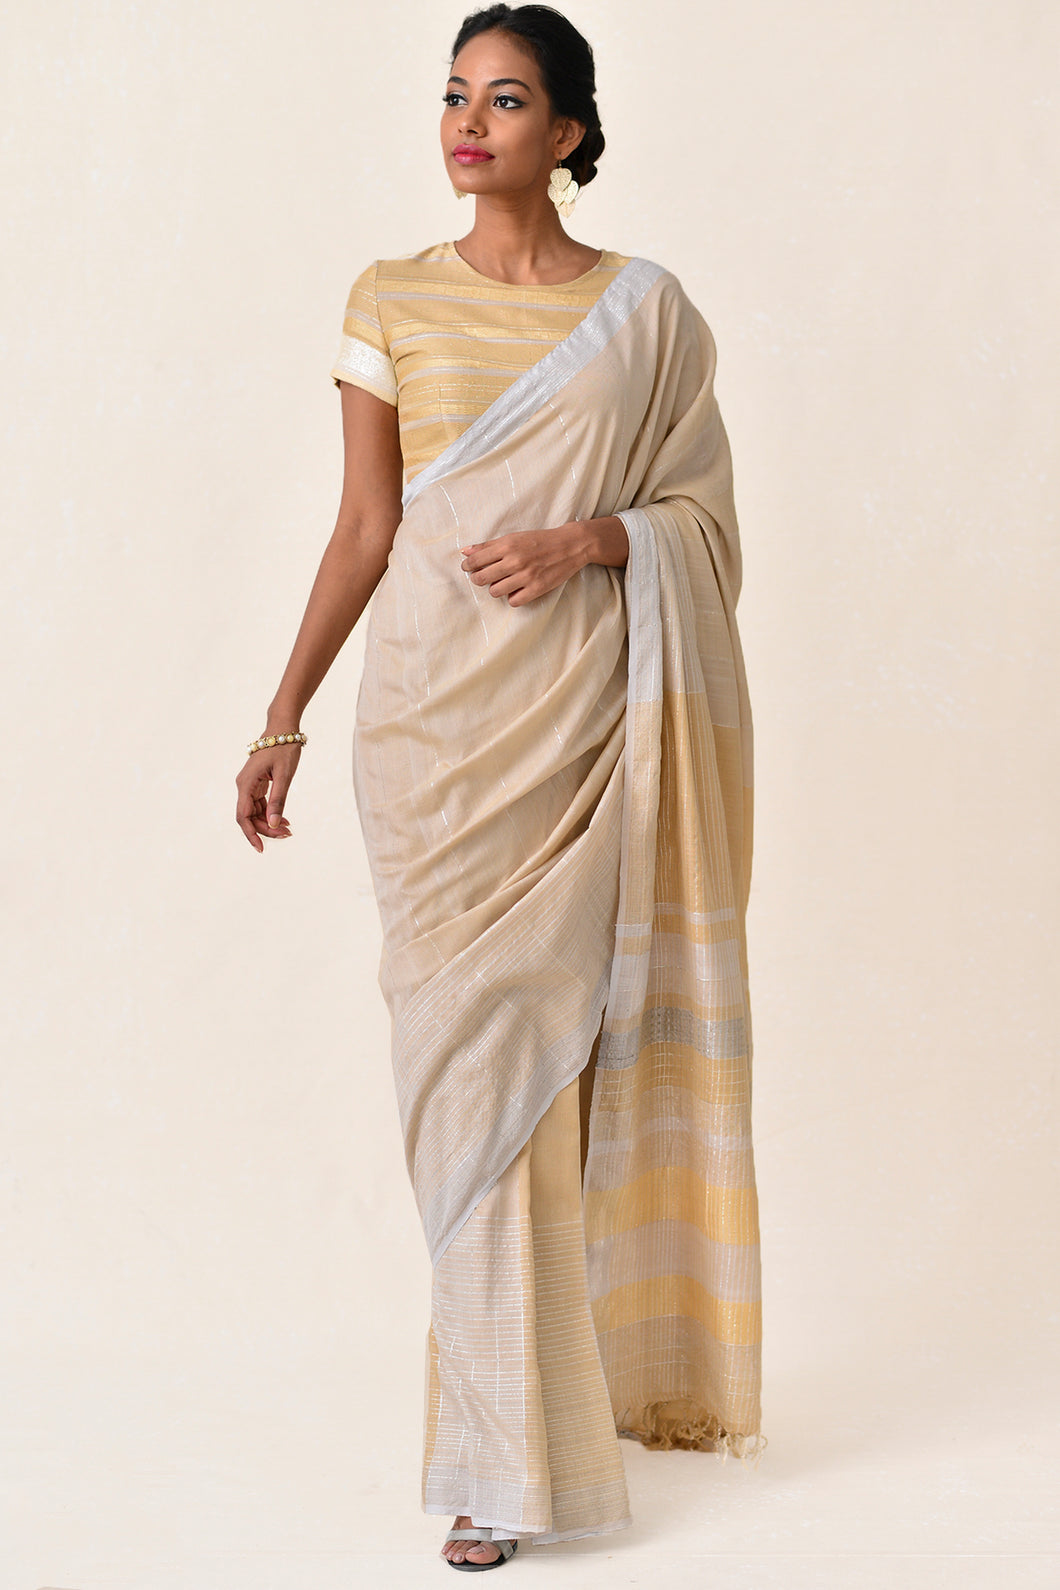 Urban Drape Beyond Sands Saree